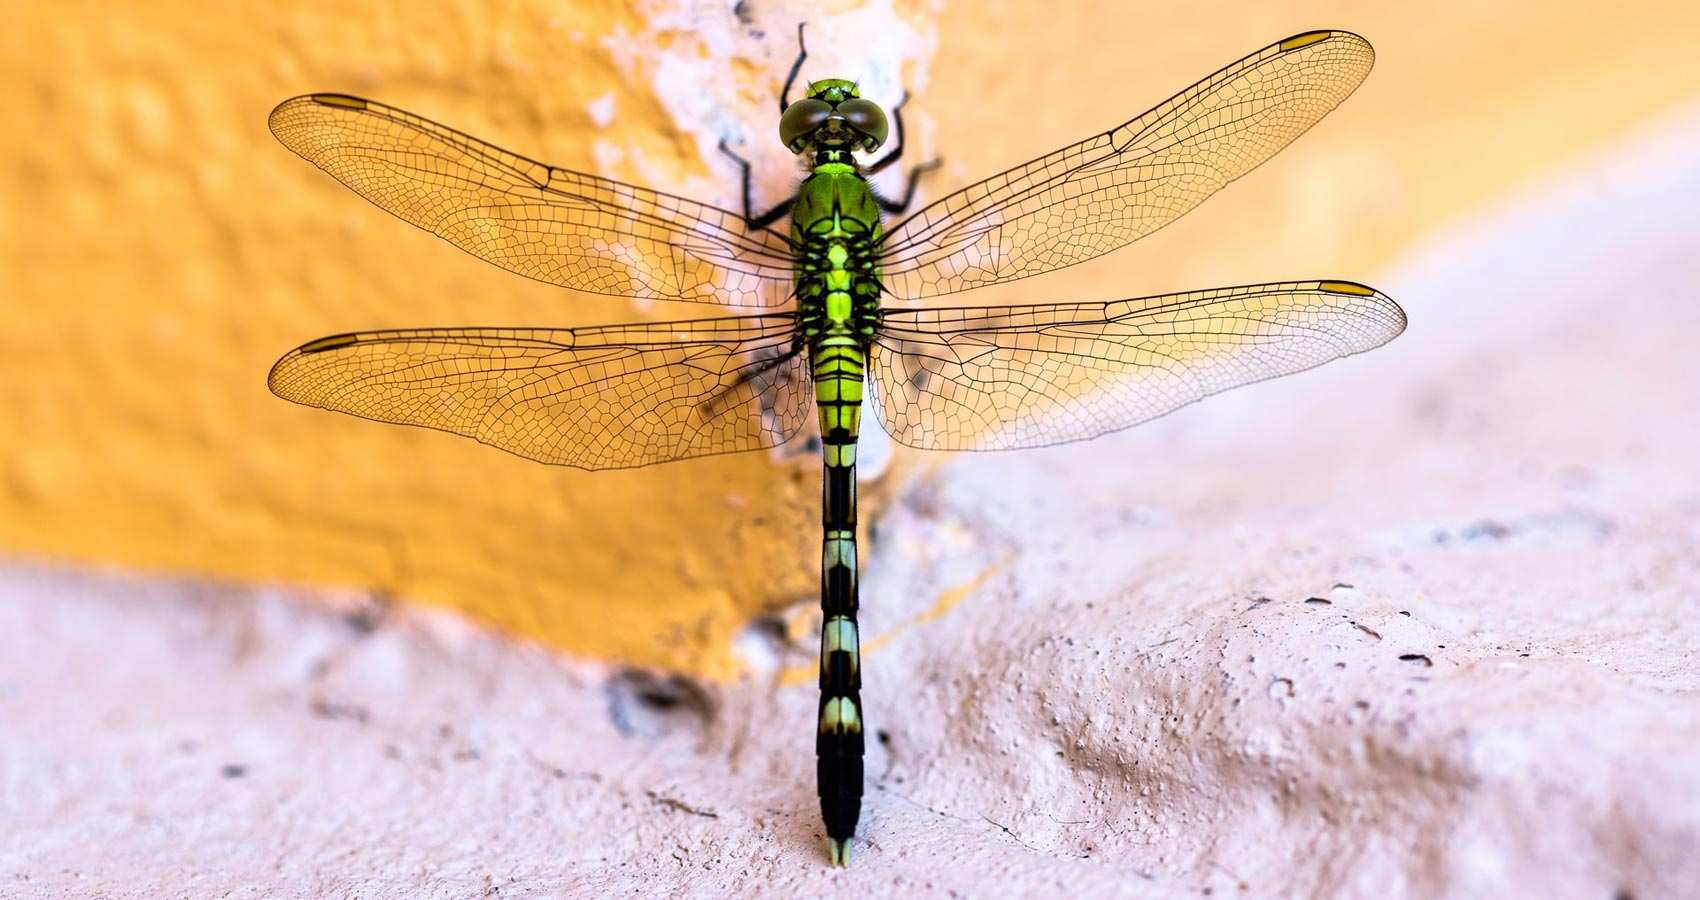 Behold The Dragons and The Damsels, poetry by Nishand Venugopal at Spillwords.com